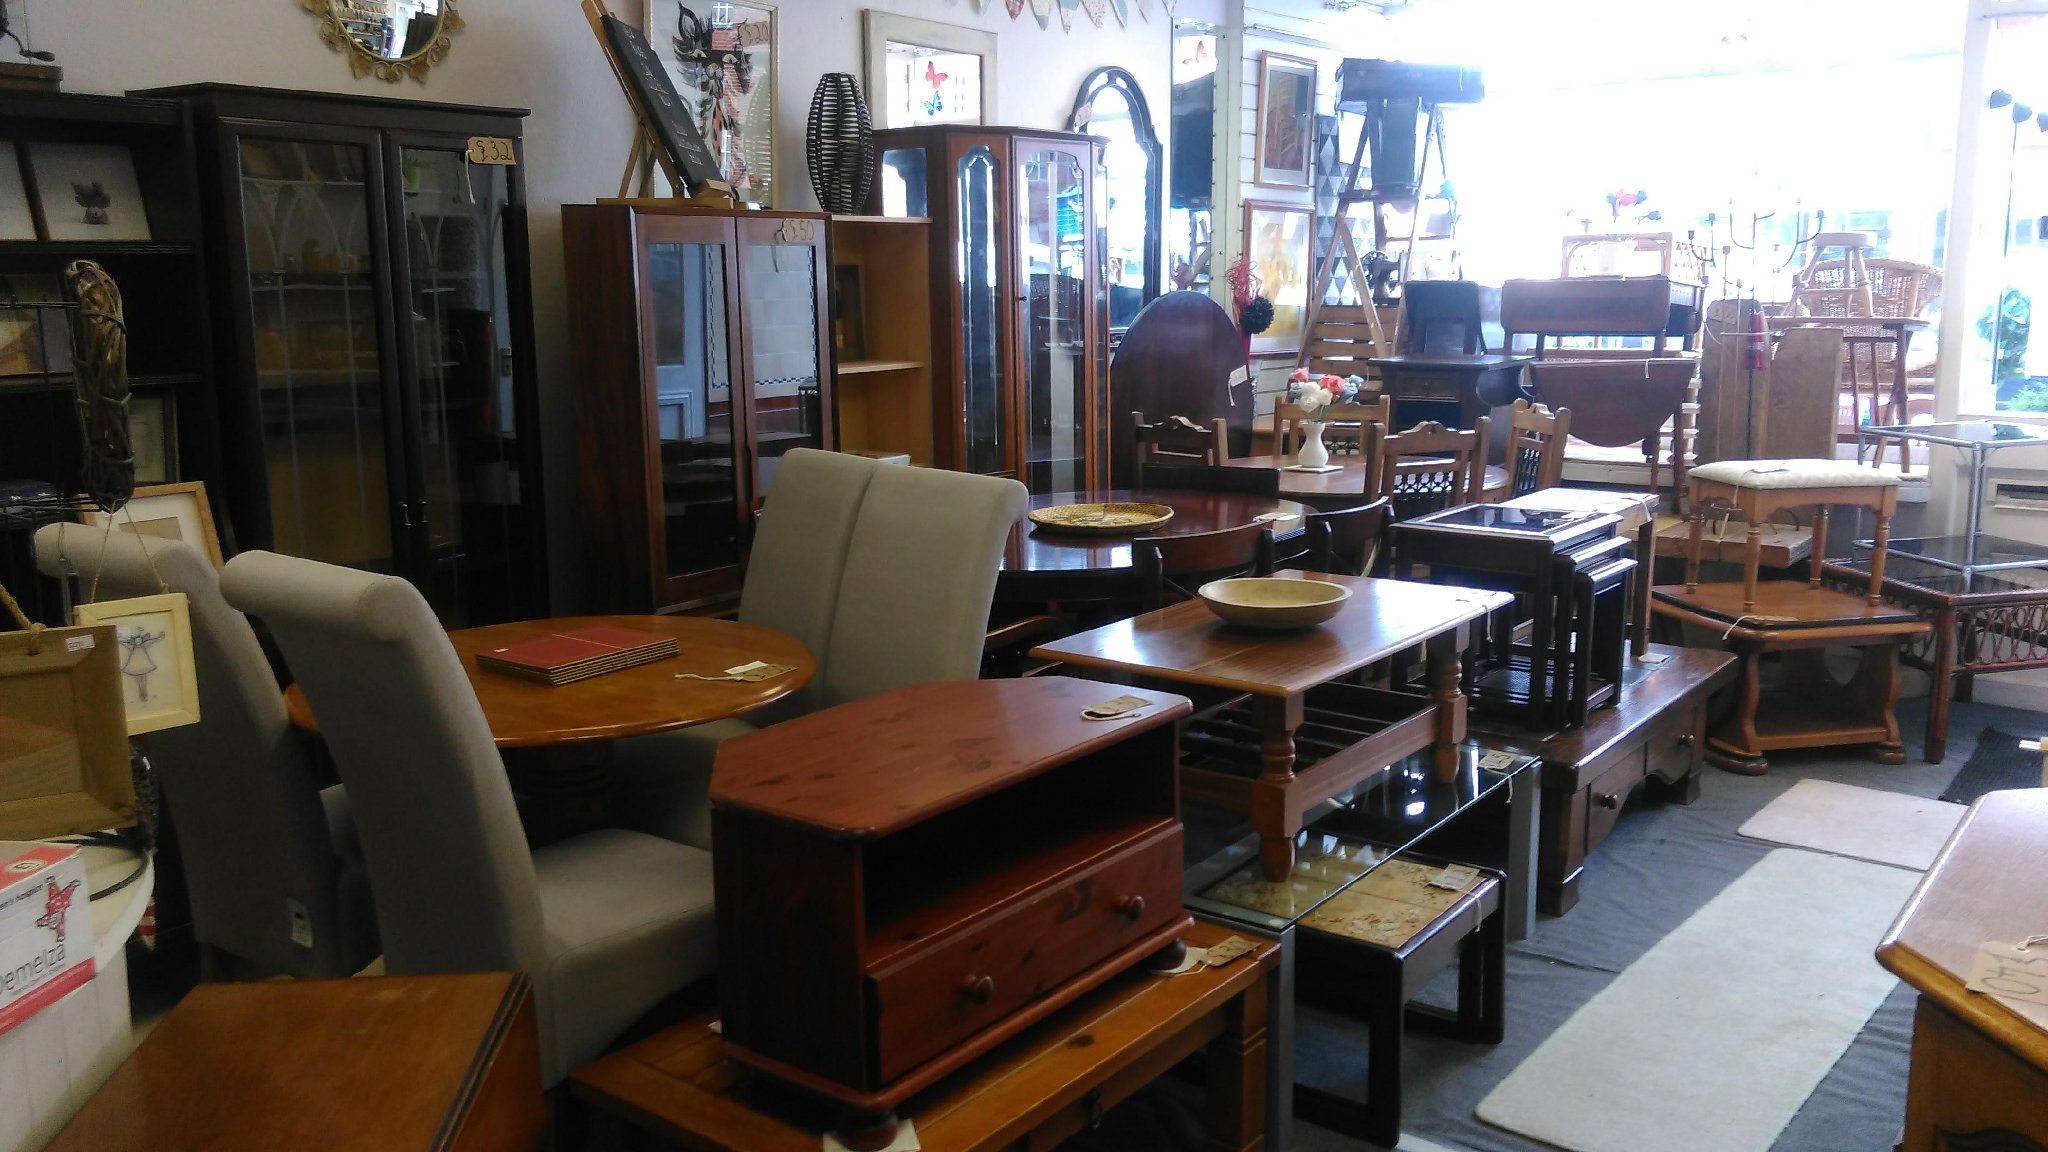 D j b furniture emporium furniture for home and office for Furniture emporium